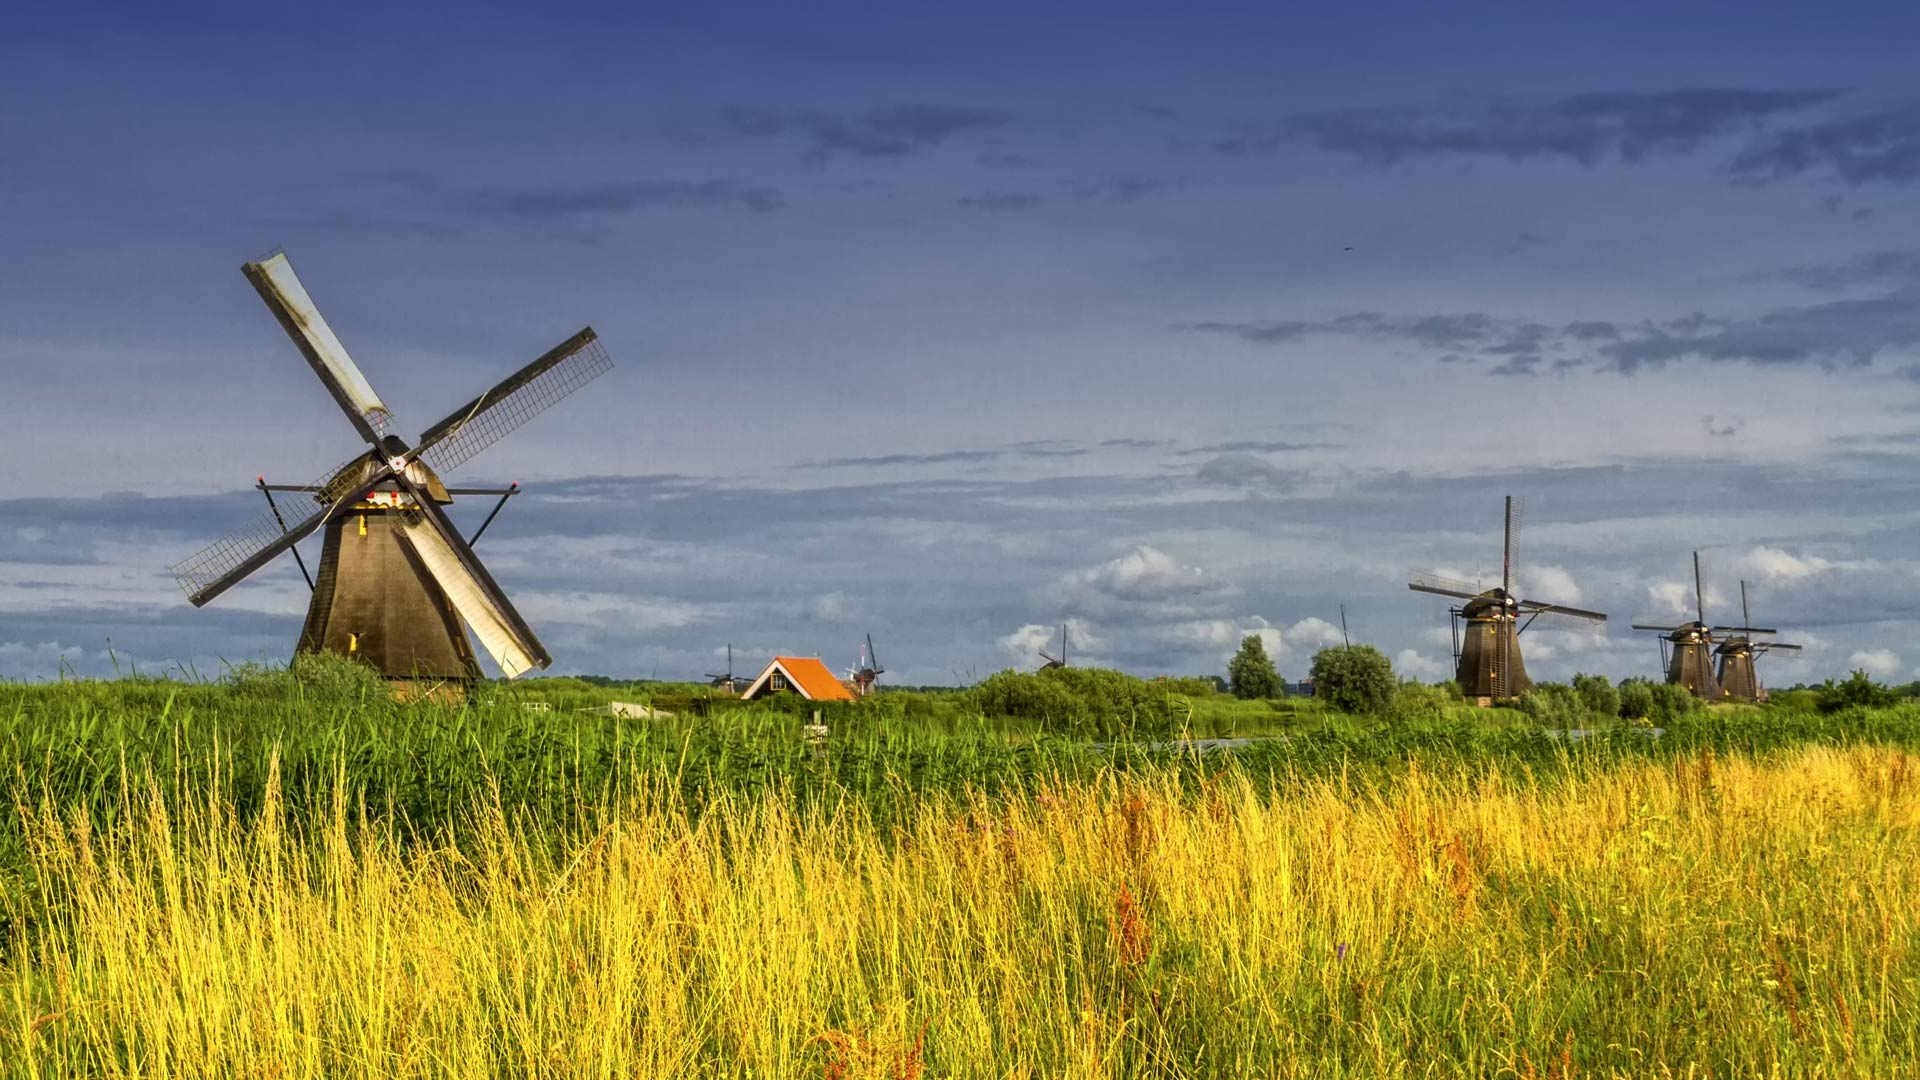 Famous historical windmills in Kinderdijk, Holland, Netherlands